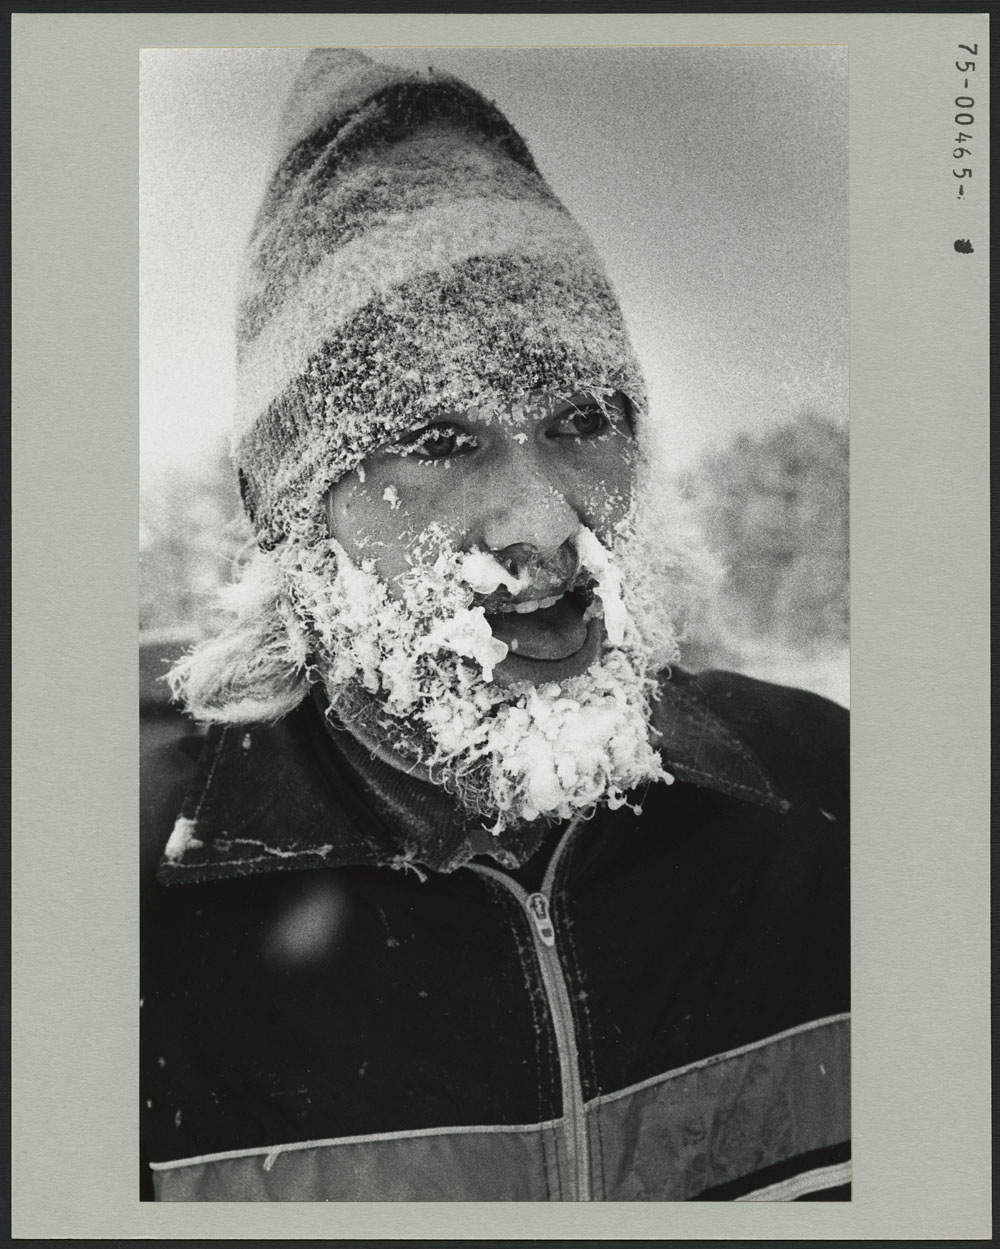 THE ICEMAN COMETH back from a workout on the cross-country trails near Westcastle. The frosted face is Sheldon Reynolds from Manitoba during the 3rd Canada Winter Games, at Lethbridge, Alberta